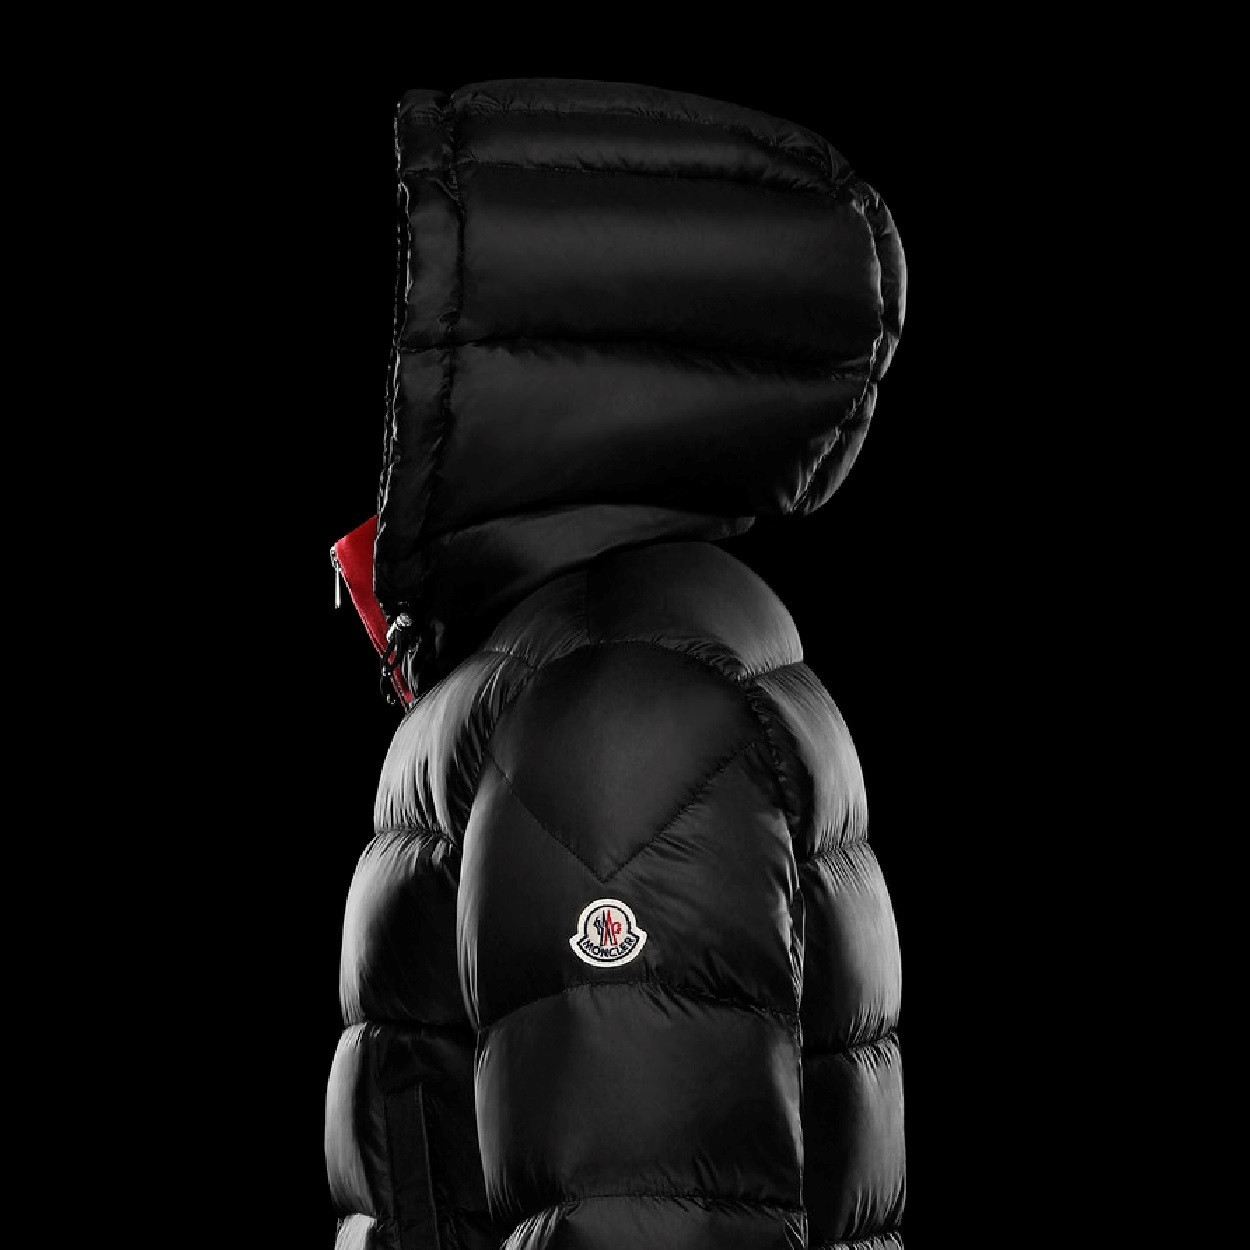 【MONCLER】CLAMART 超軽量 防水ナイロン製 ダウンジャケット